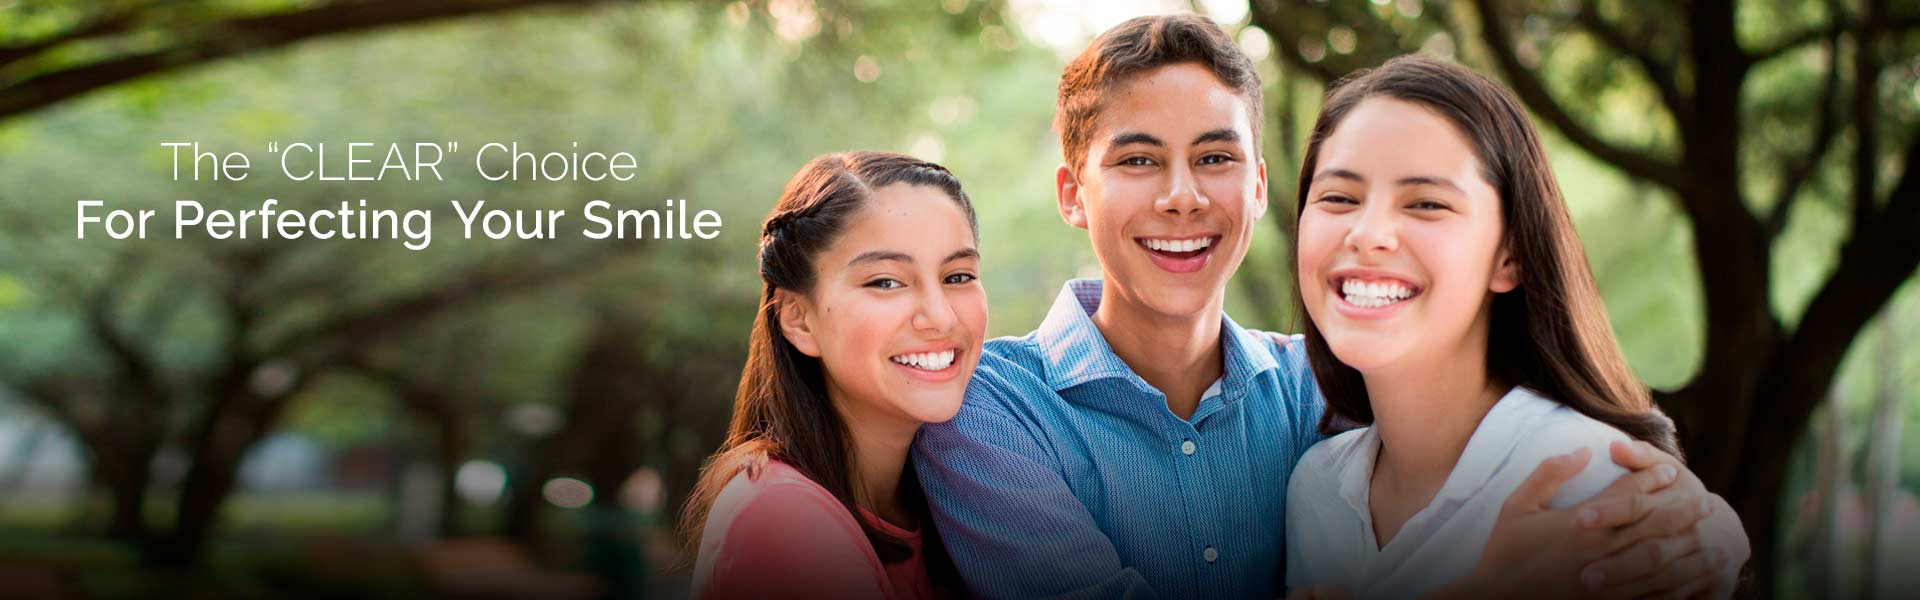 Clear Choice Teen Sliders at Orthodontic Specialist PC in Brooklyn Staten Island NY and Metuchen NJ